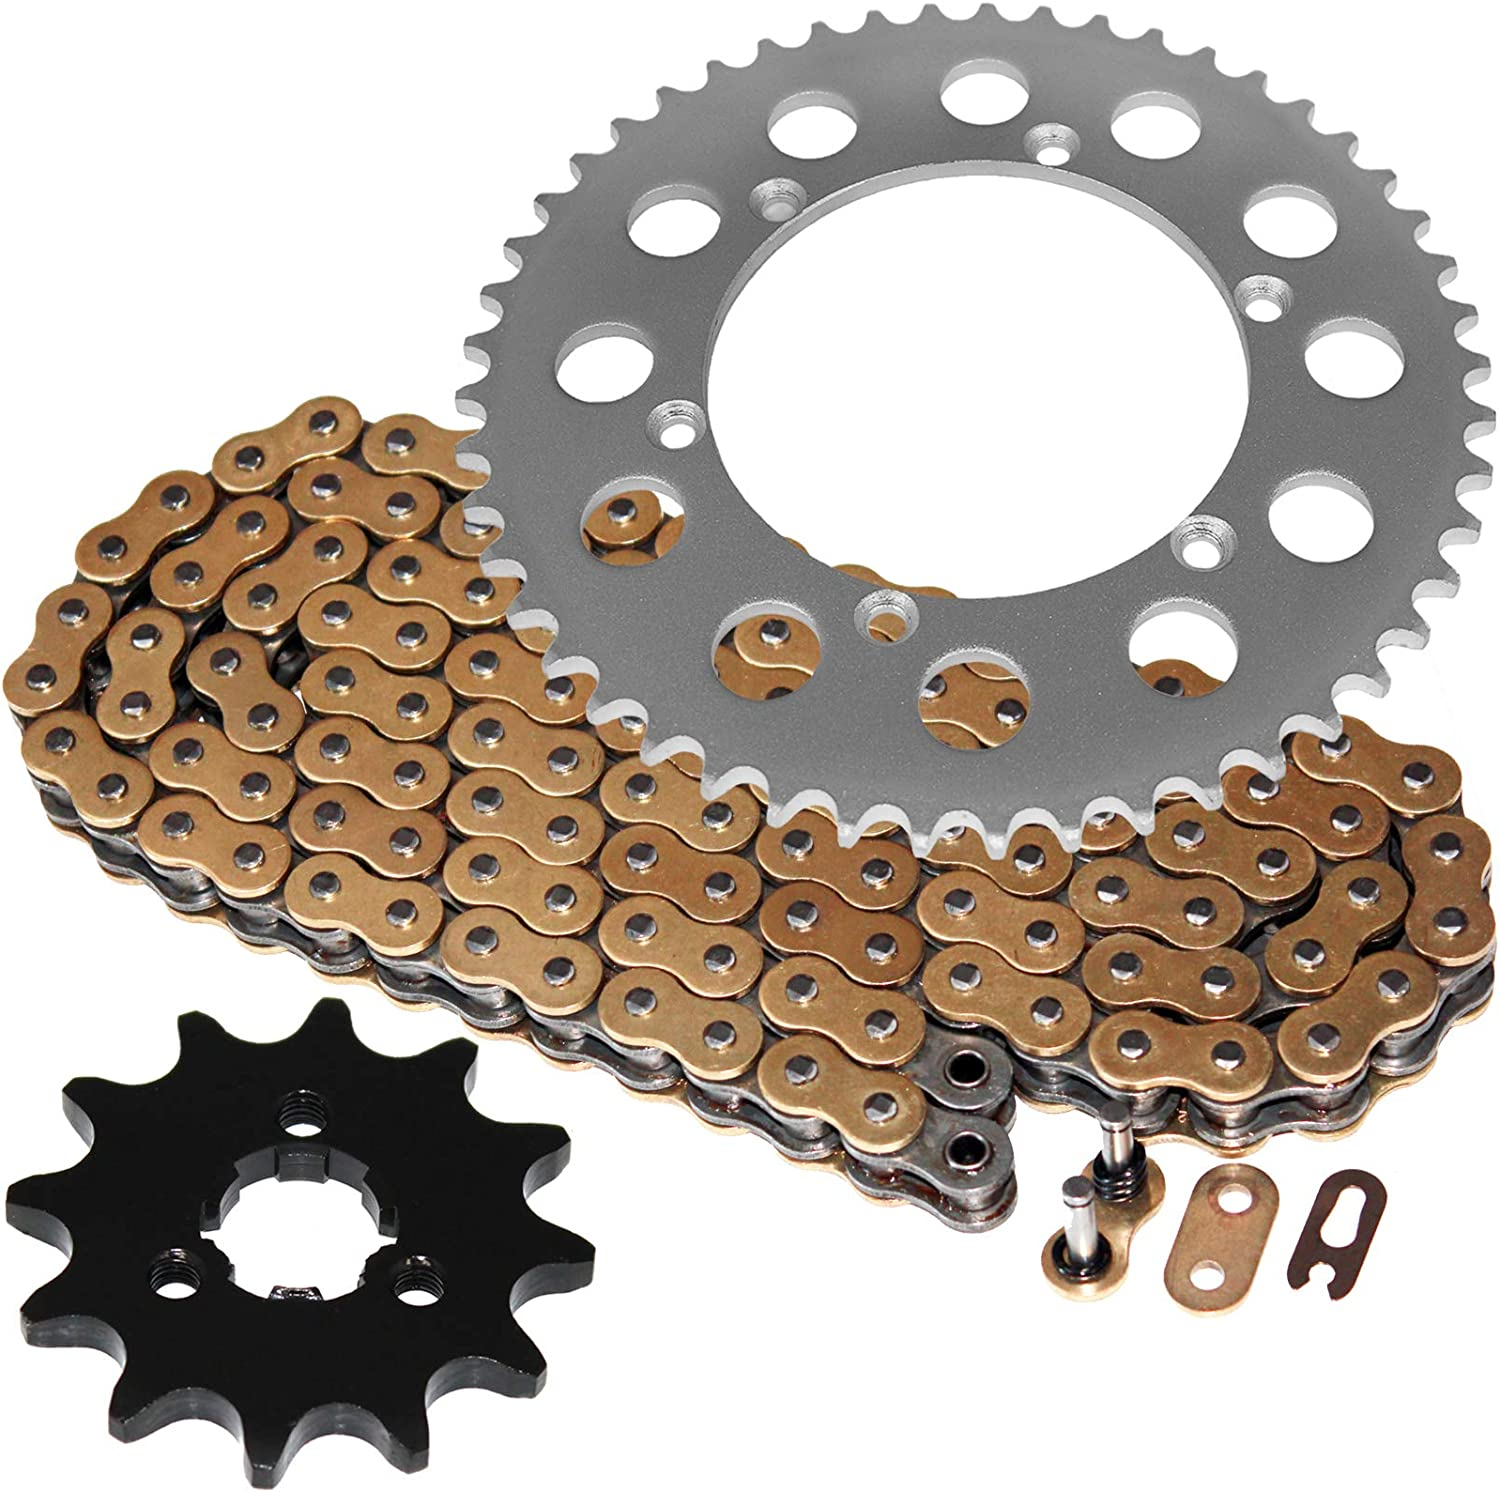 Caltric compatible SEAL limited product with Max 77% OFF Gold O-Ring Chain Sprockets Drive Ki and